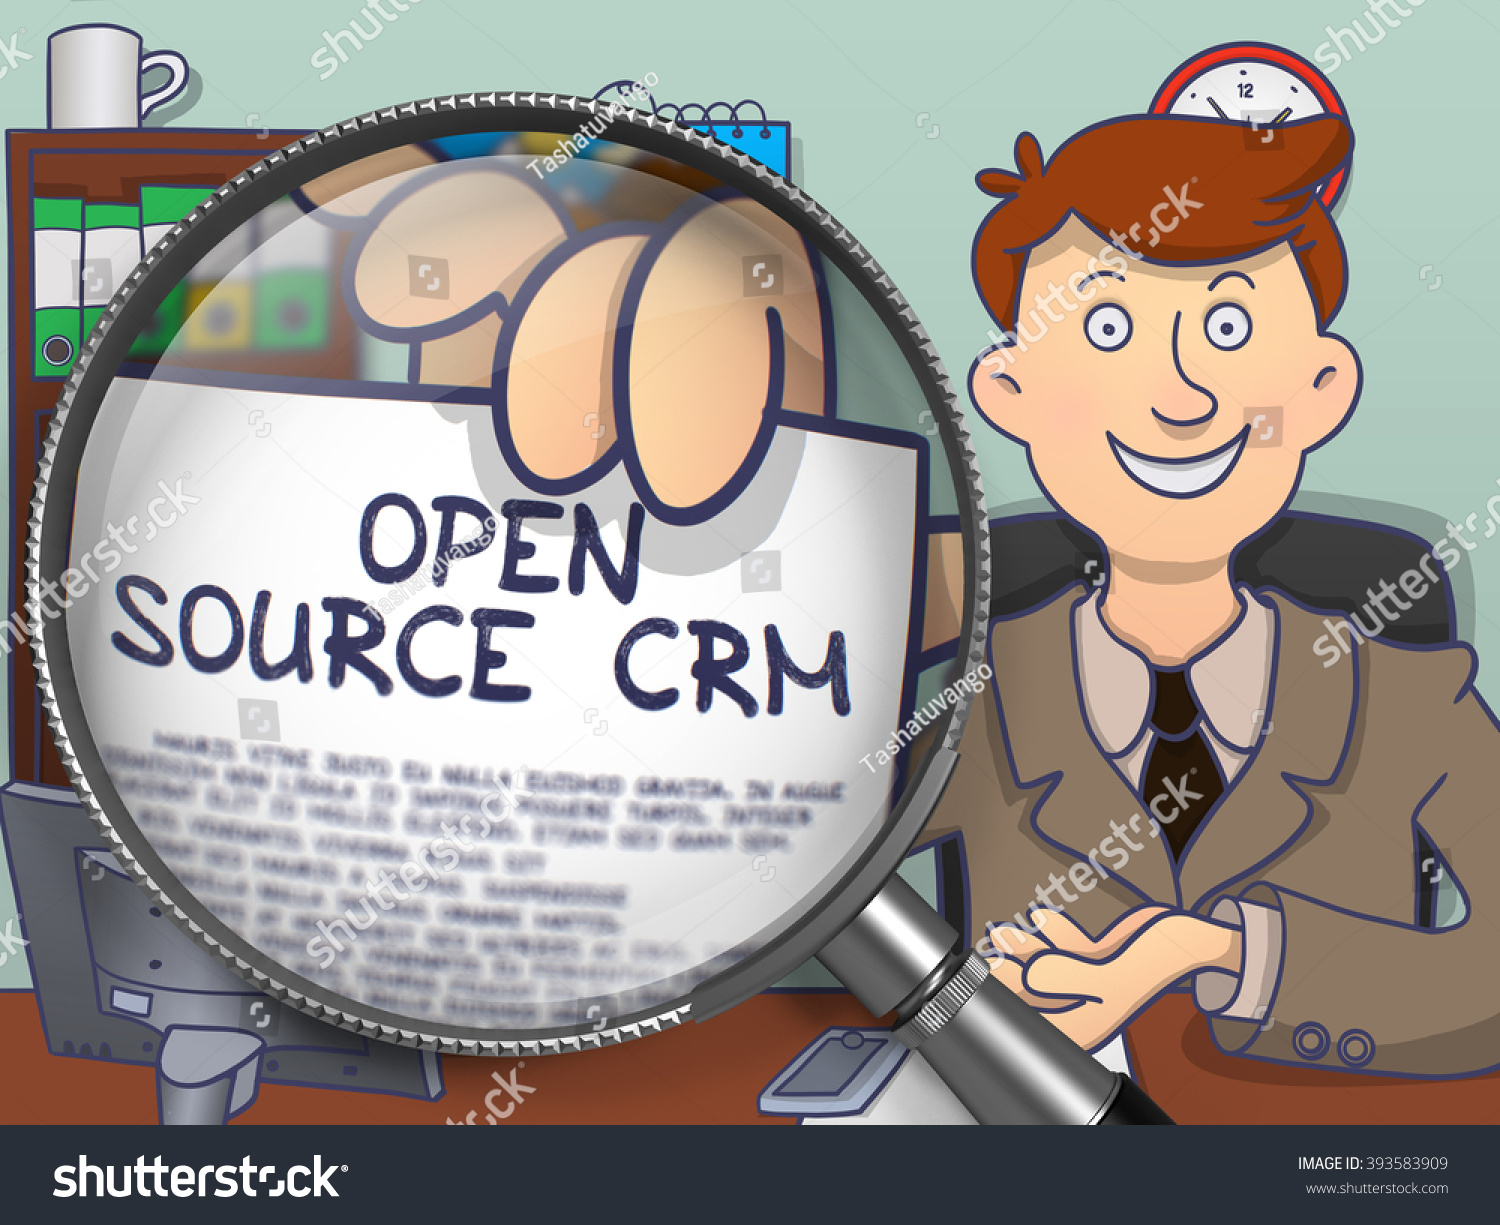 Open source crm officeman office holding stock illustration 393583909 shutterstock Open source illustrator